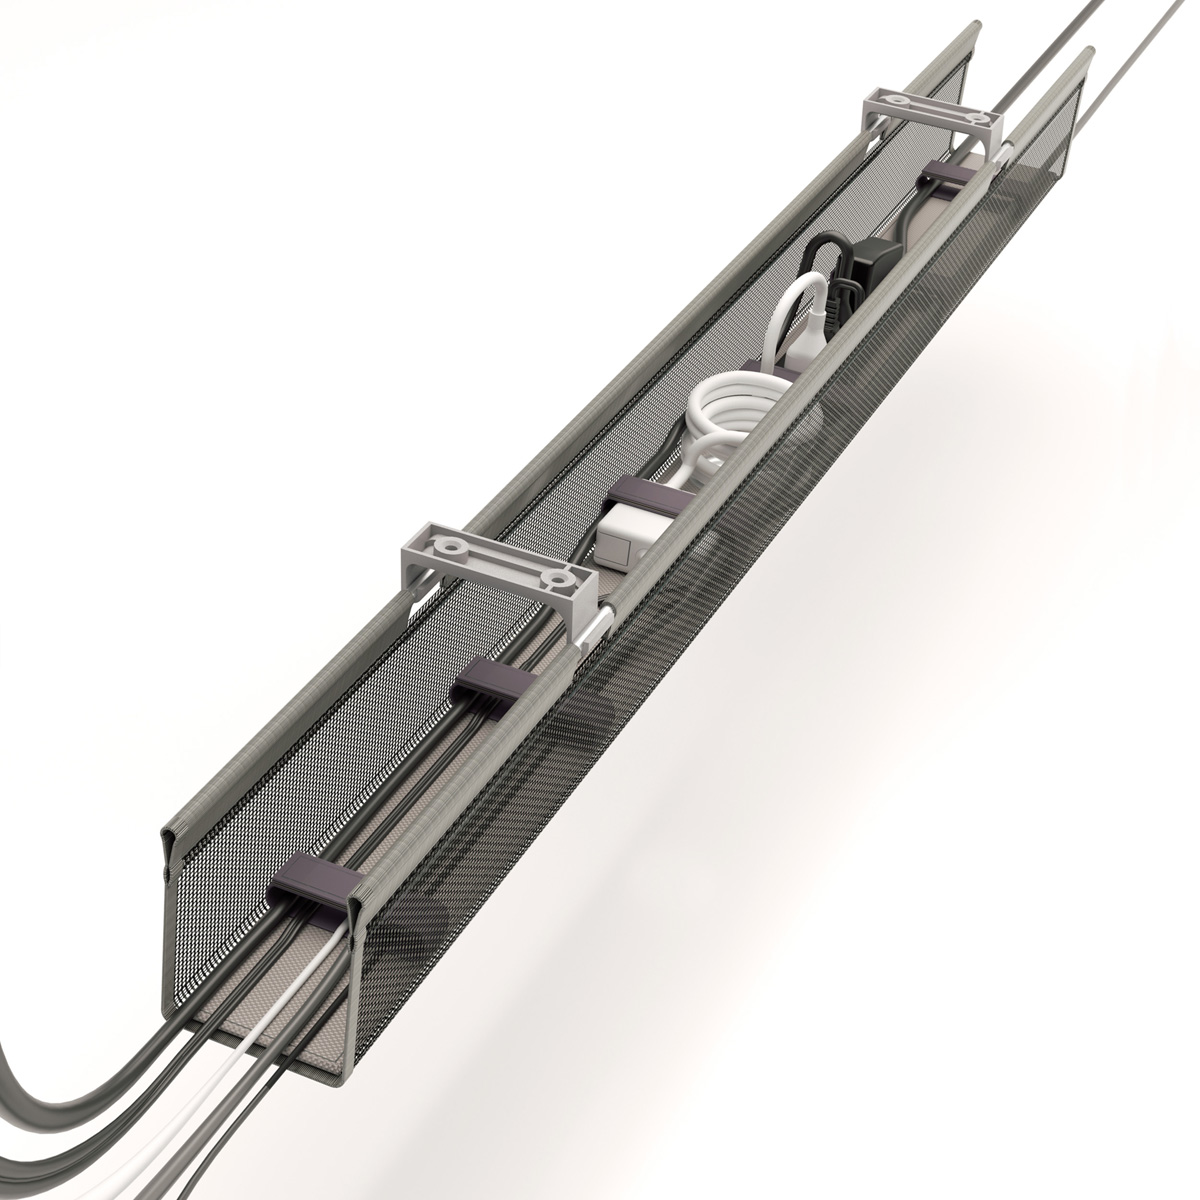 Mesh Cable Trough - ACC-WM-MTXX